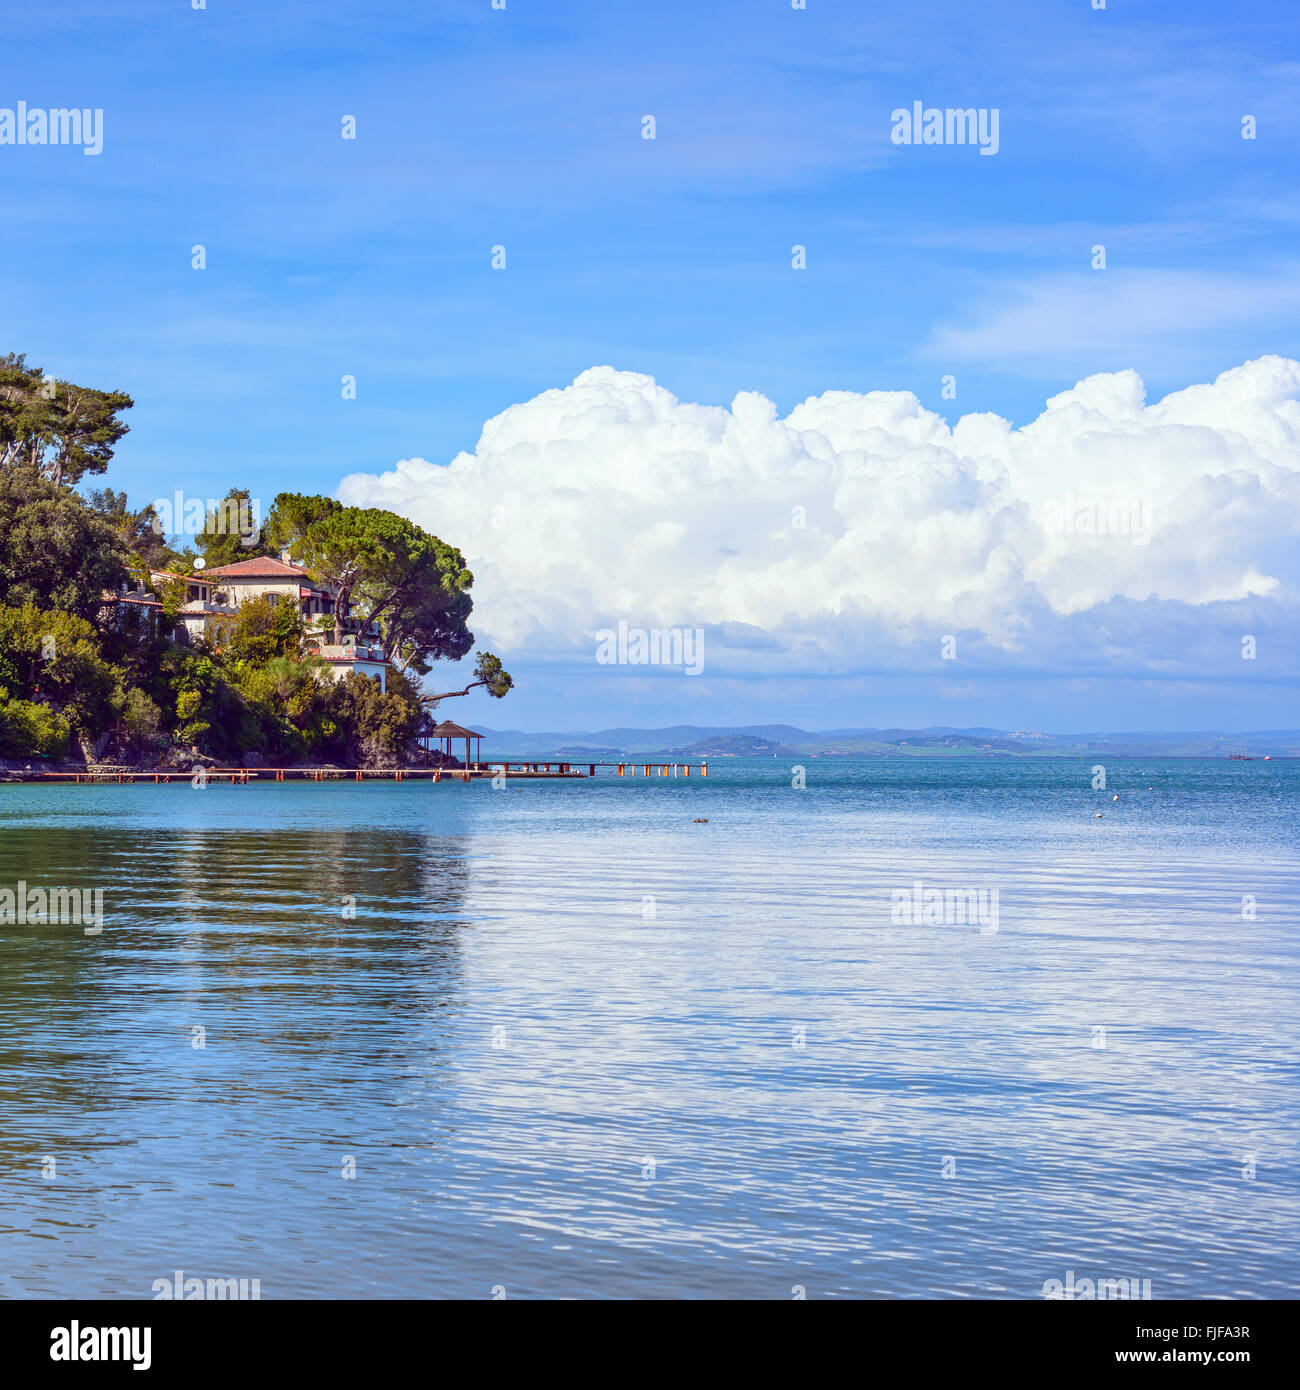 Headland, trees, and pier or jetty on a blue ocean and cloudy sky. Bay beach in Monte Argentario, Porto Santo Stefano, - Stock Image